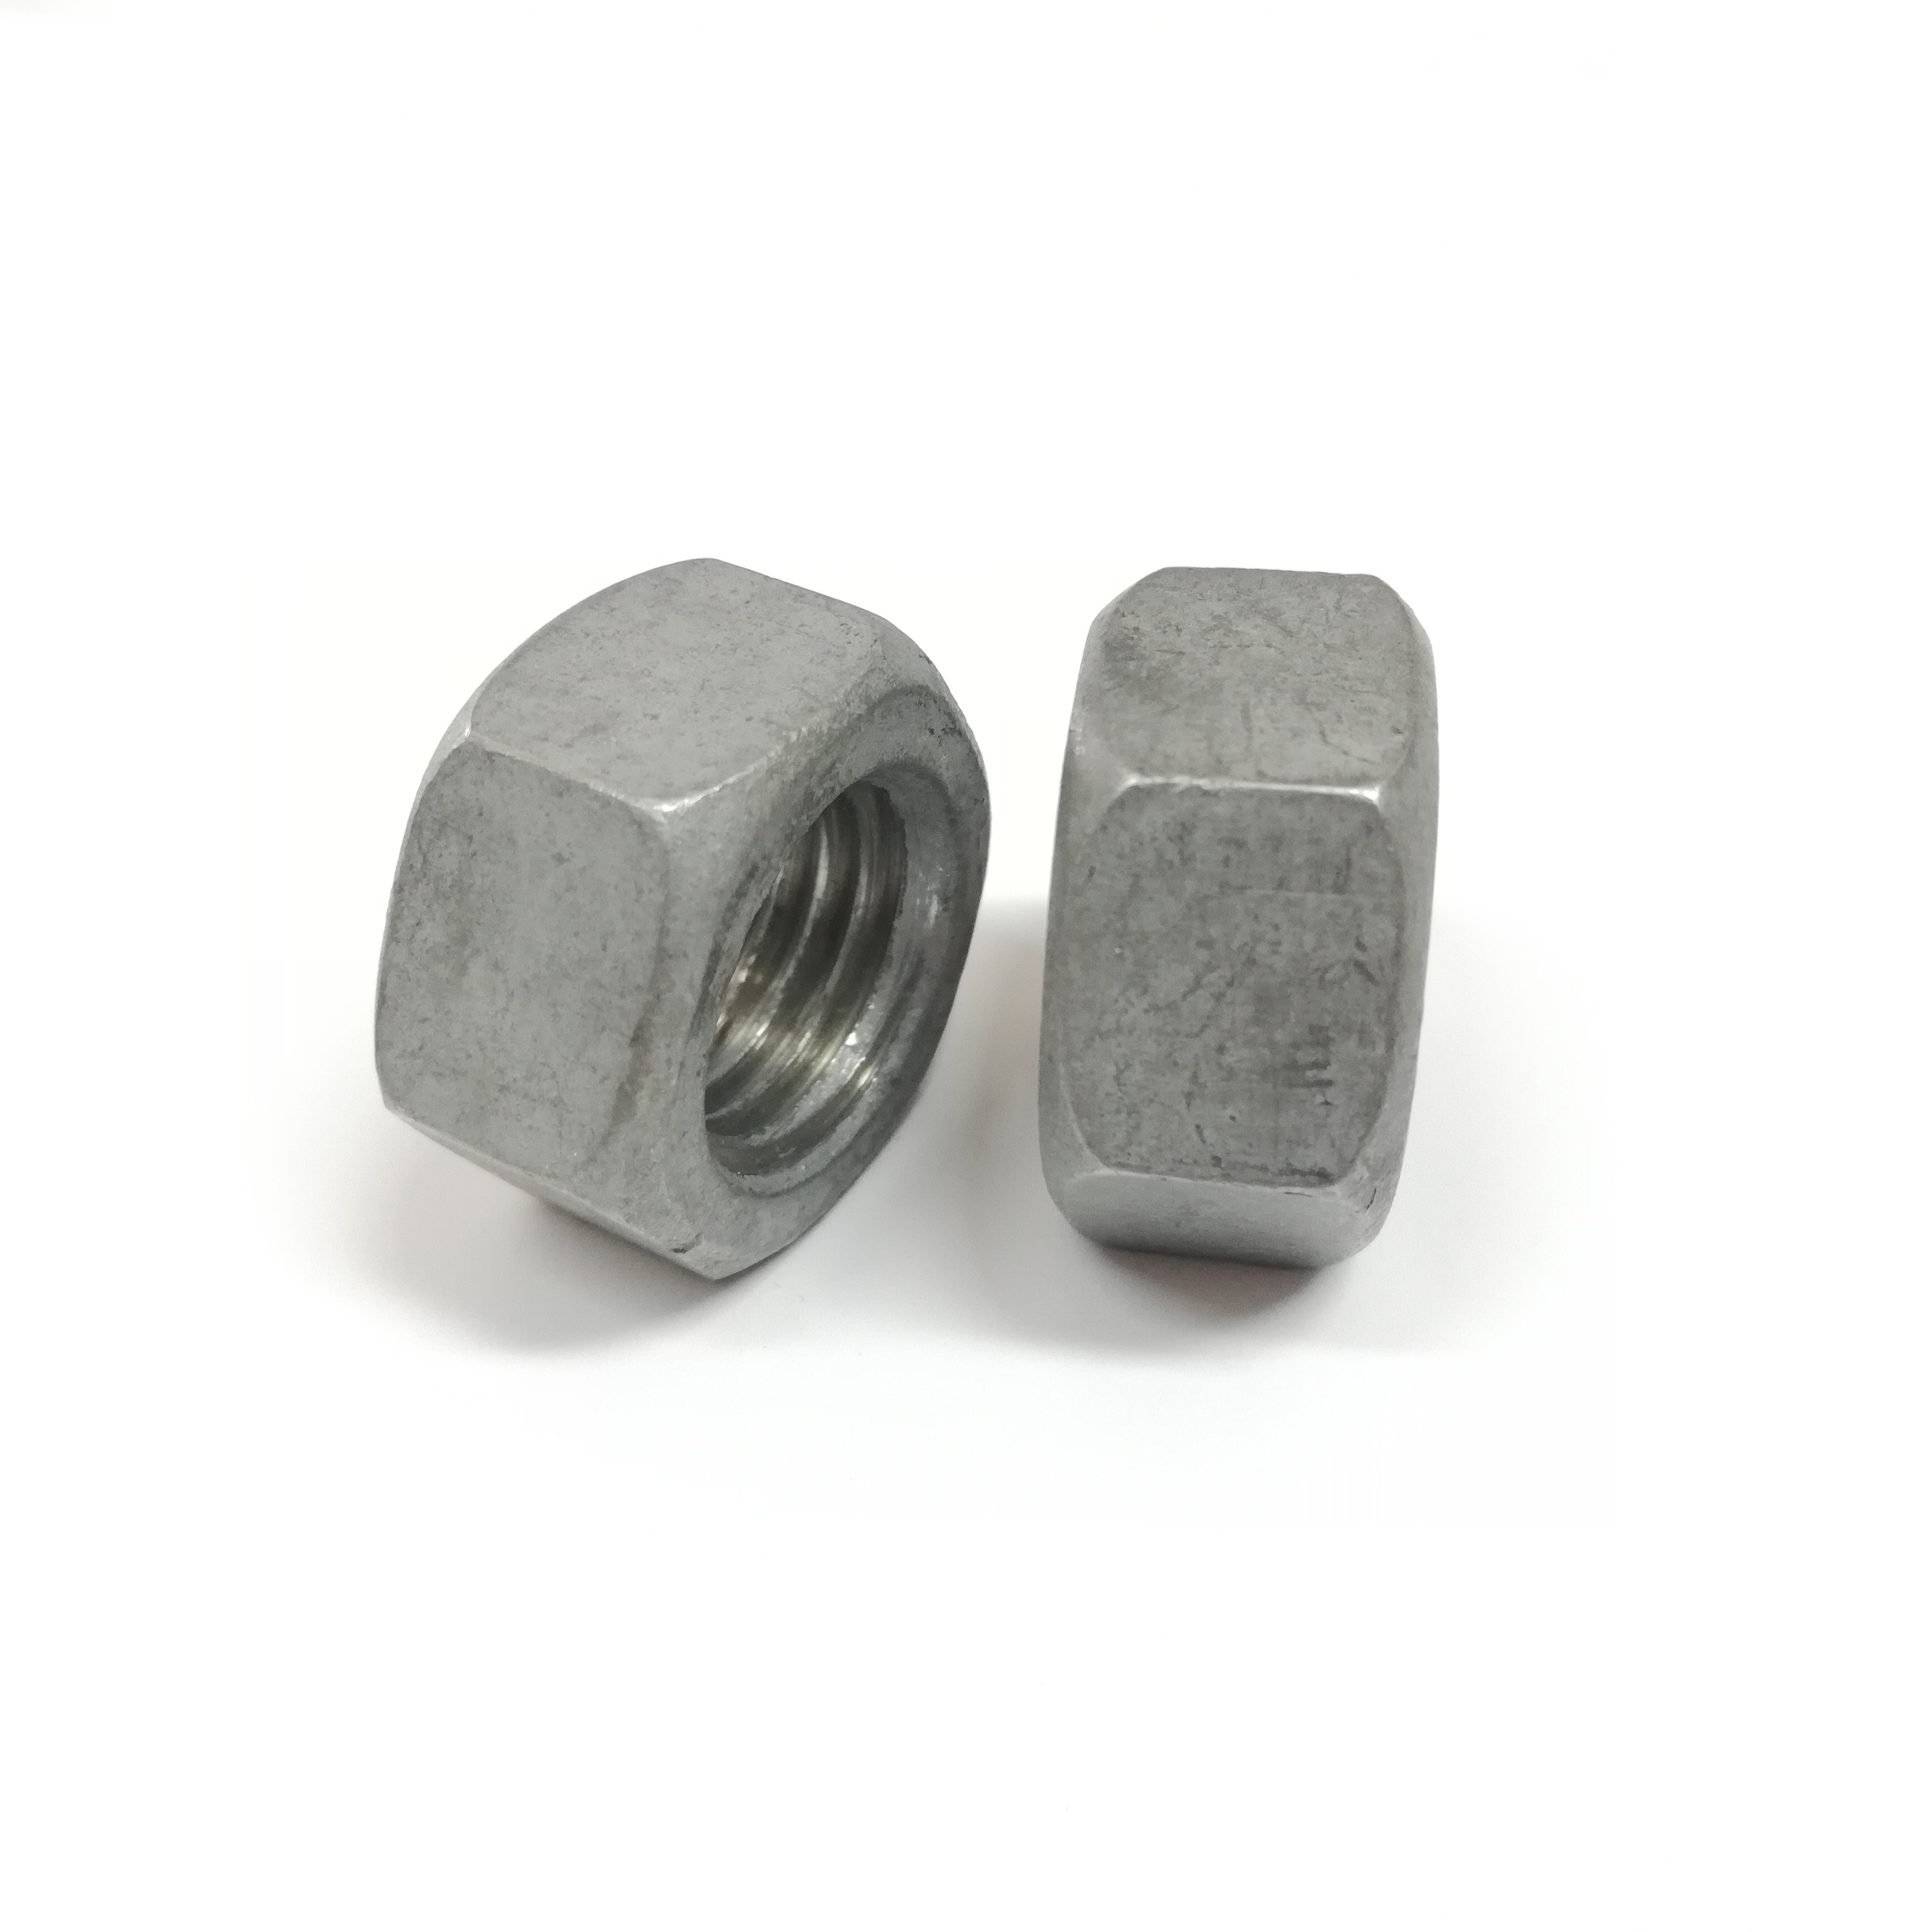 Nuts M3 hex Nuts Galvanized Carbon Steel Nuts 4000 Pieces